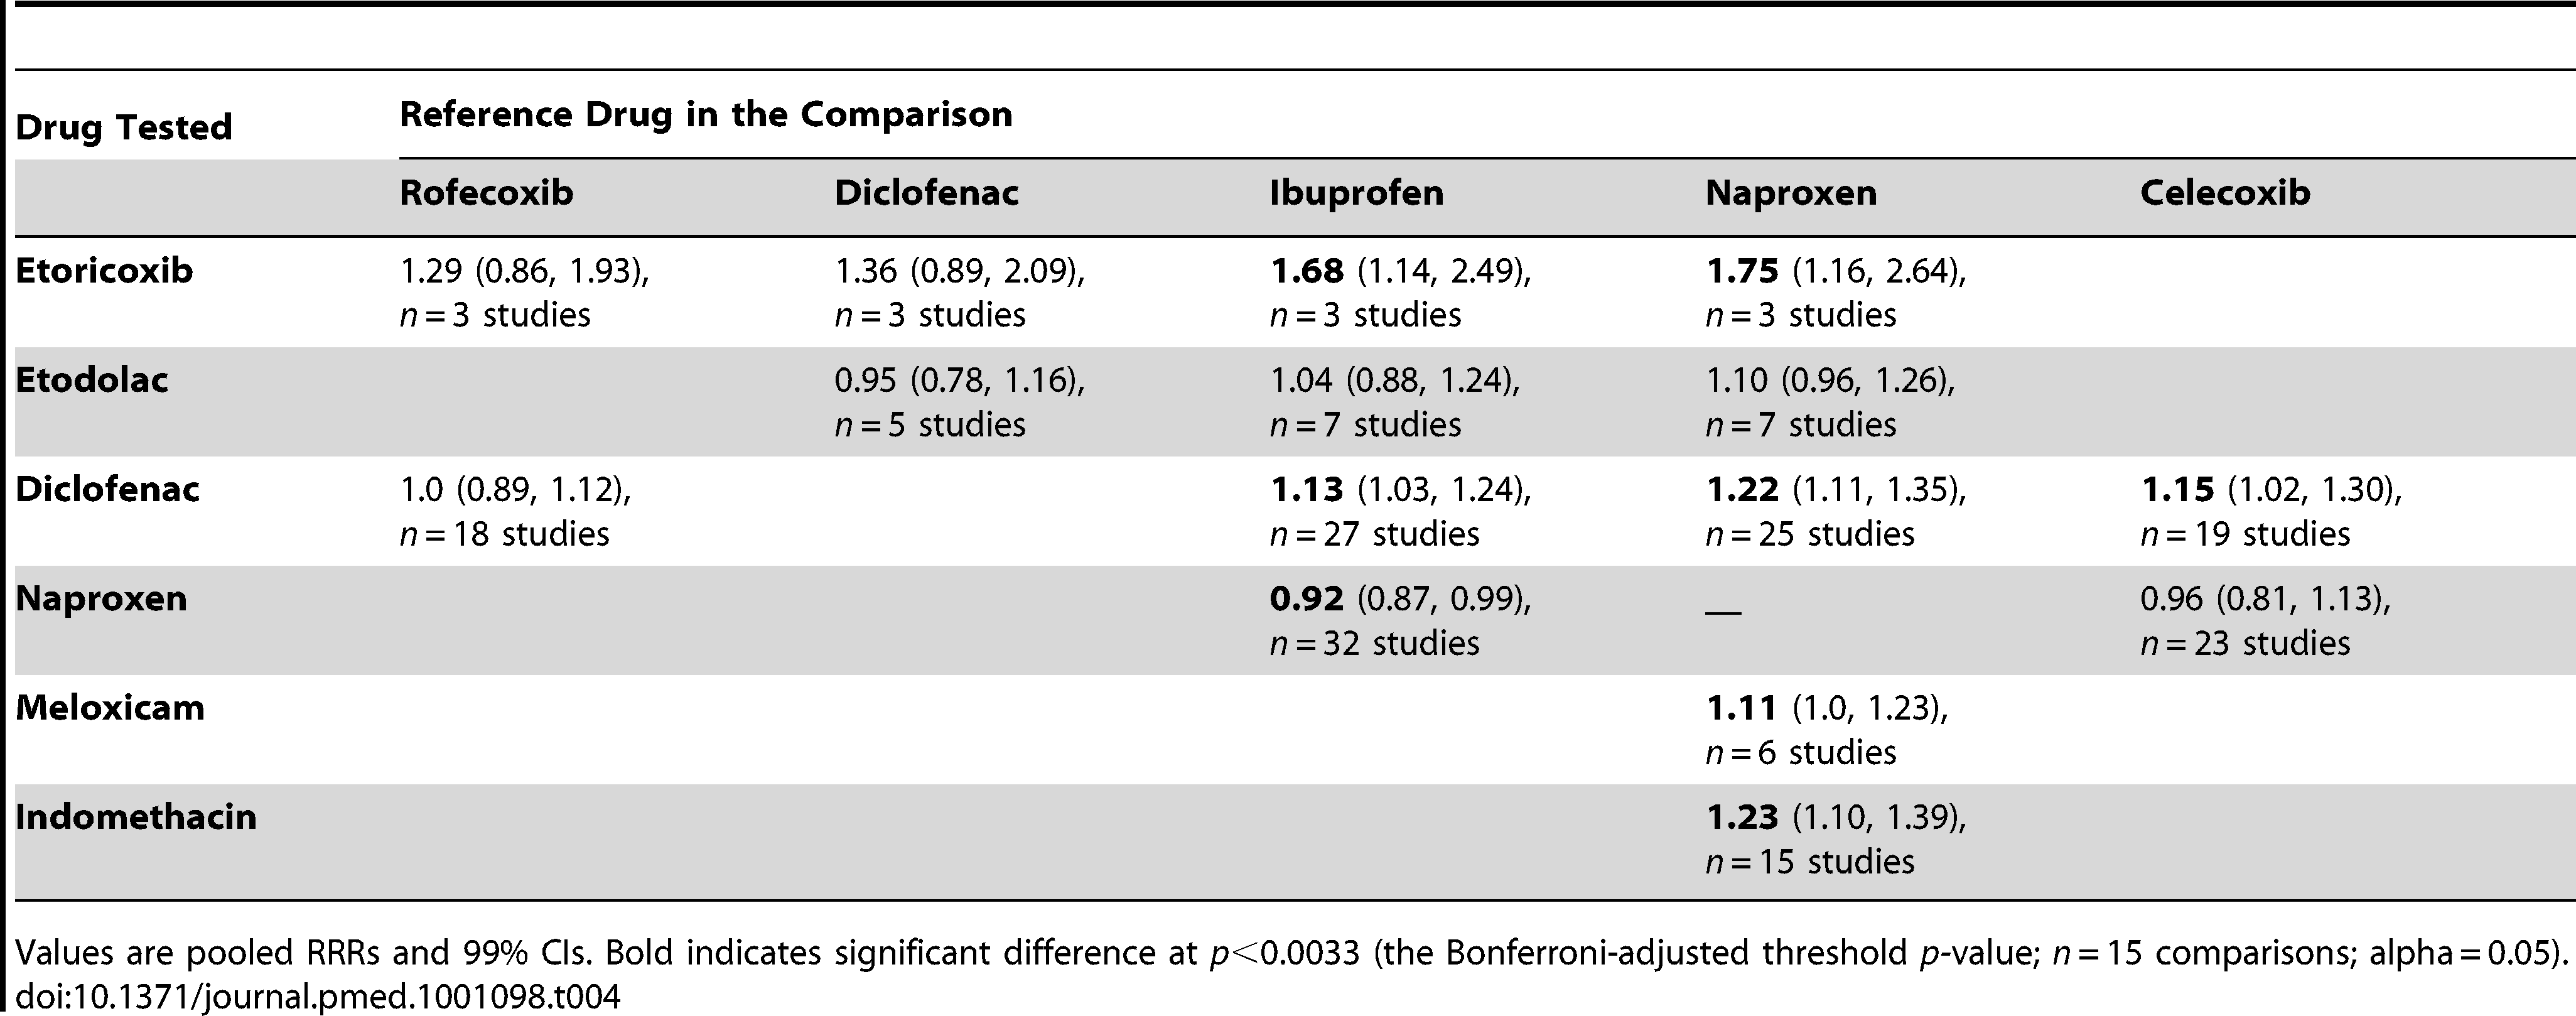 Selected pair-wise comparisons of individual drugs.